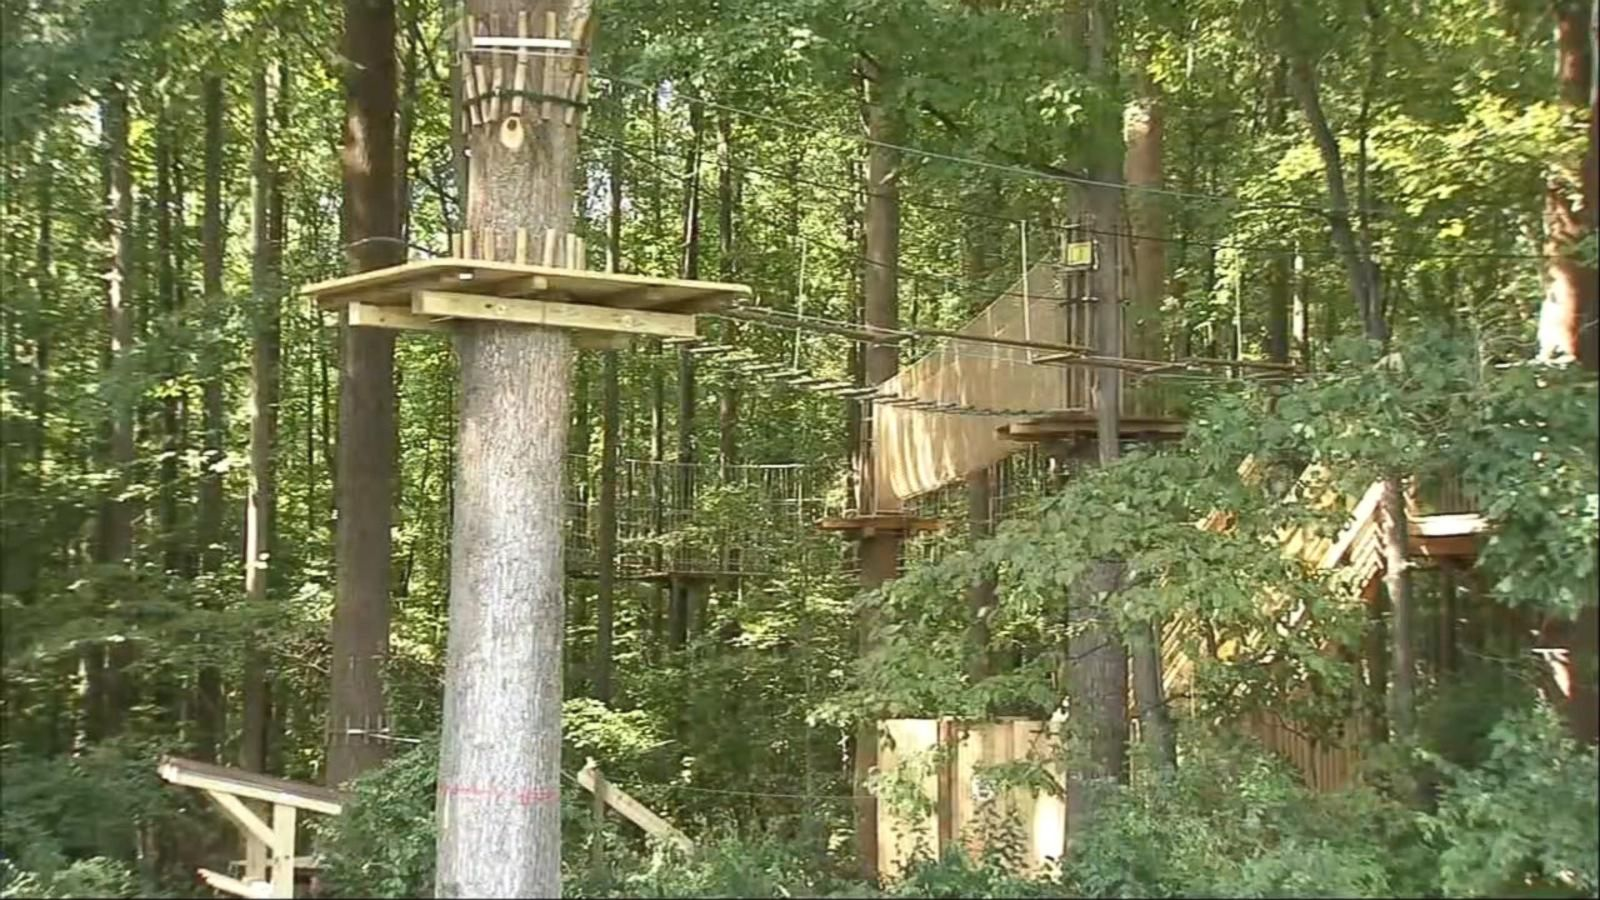 VIDEO: 59-Year-Old Woman Dies on Zip Line Course